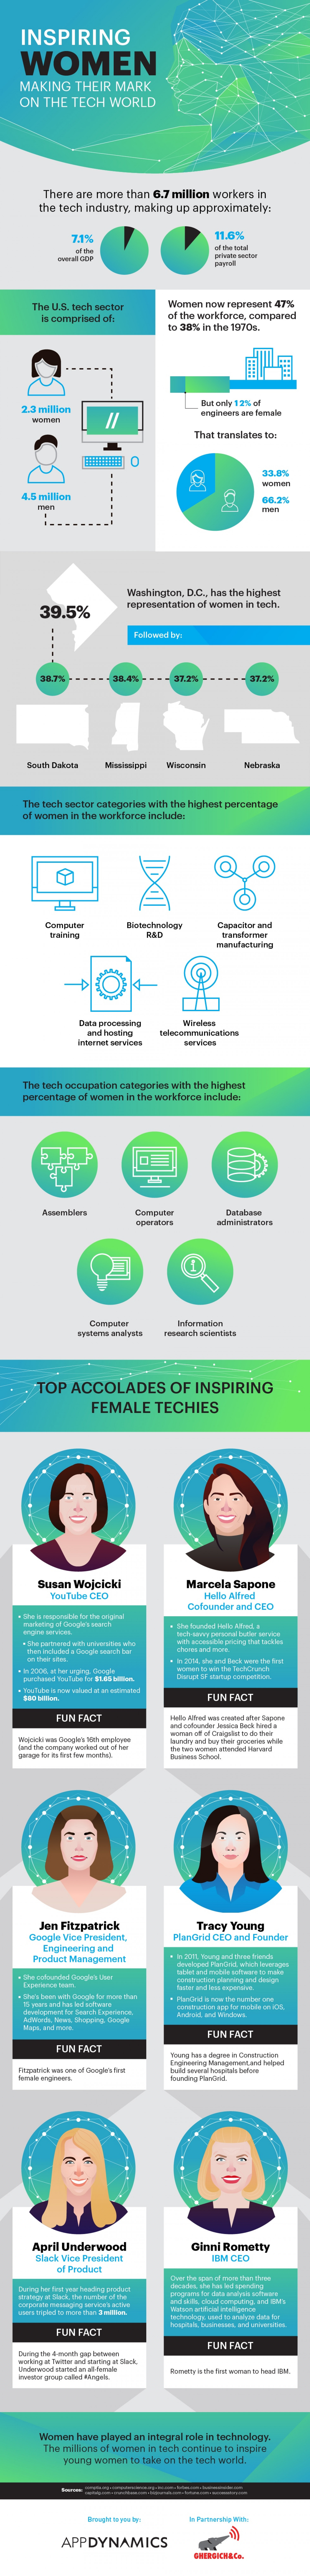 Inspiring Women Making Their Mark on the Tech World Infographic